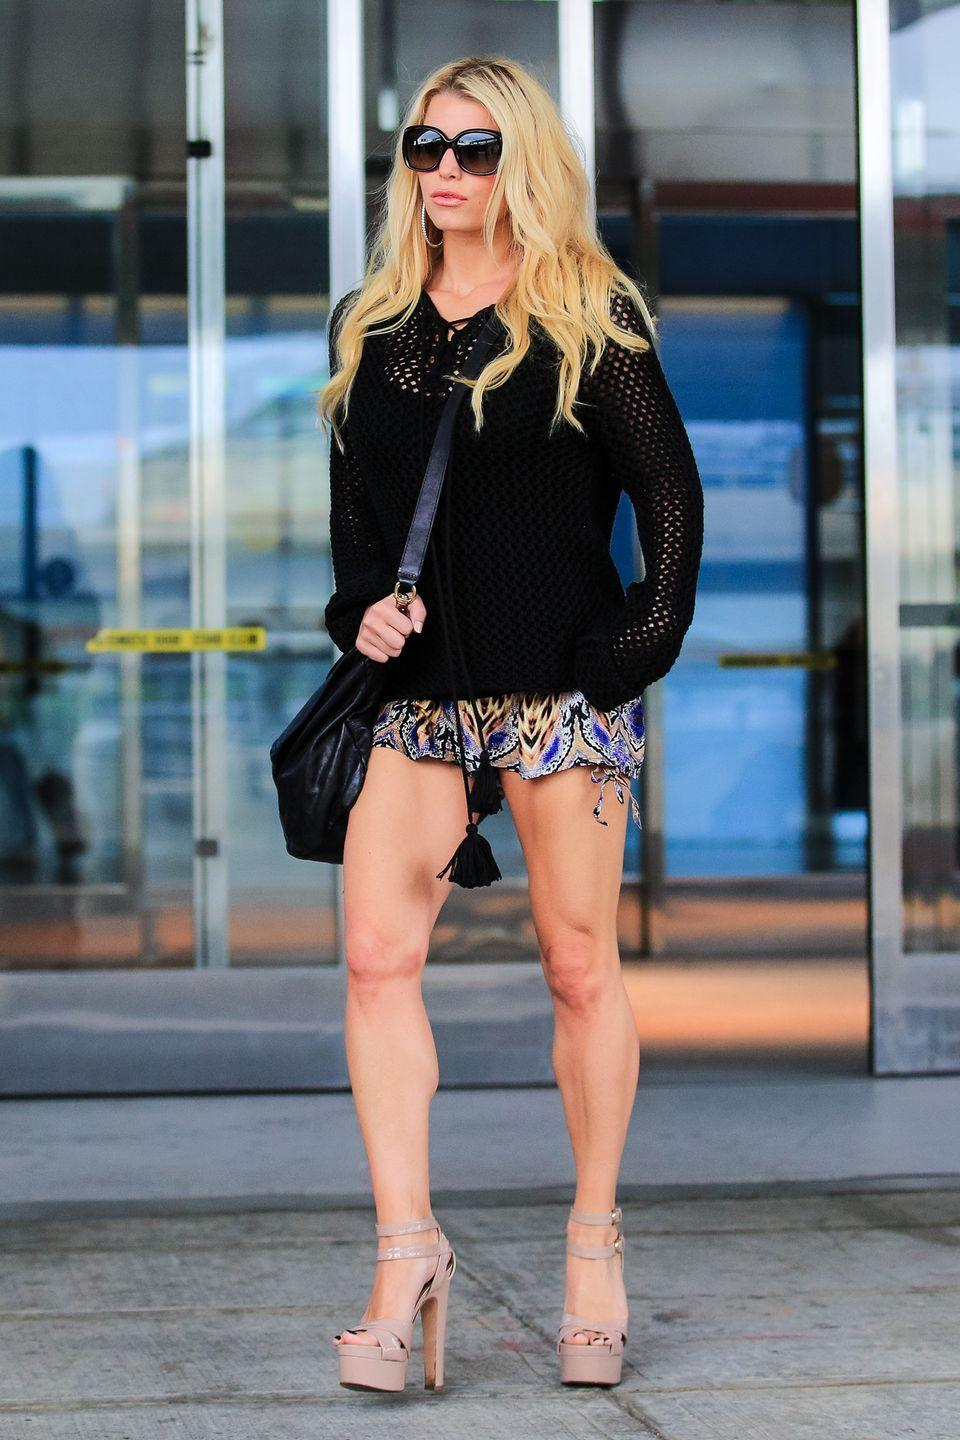 <p><strong>Jessica Simpson, 2014</strong>: Not only are her shorts insanely small, but, also, absurd shoes. (Though her legs look amazing.)</p>